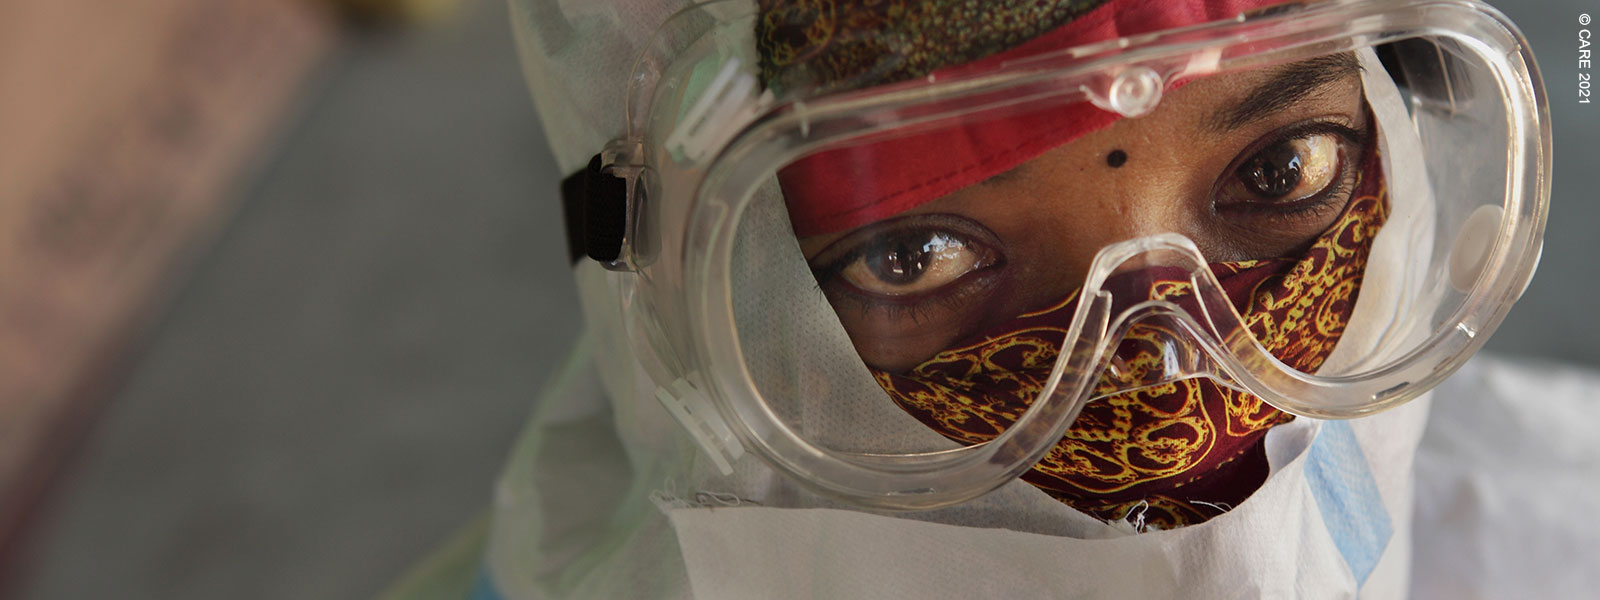 A healthcare worker in mask and PPE, Bihar, India